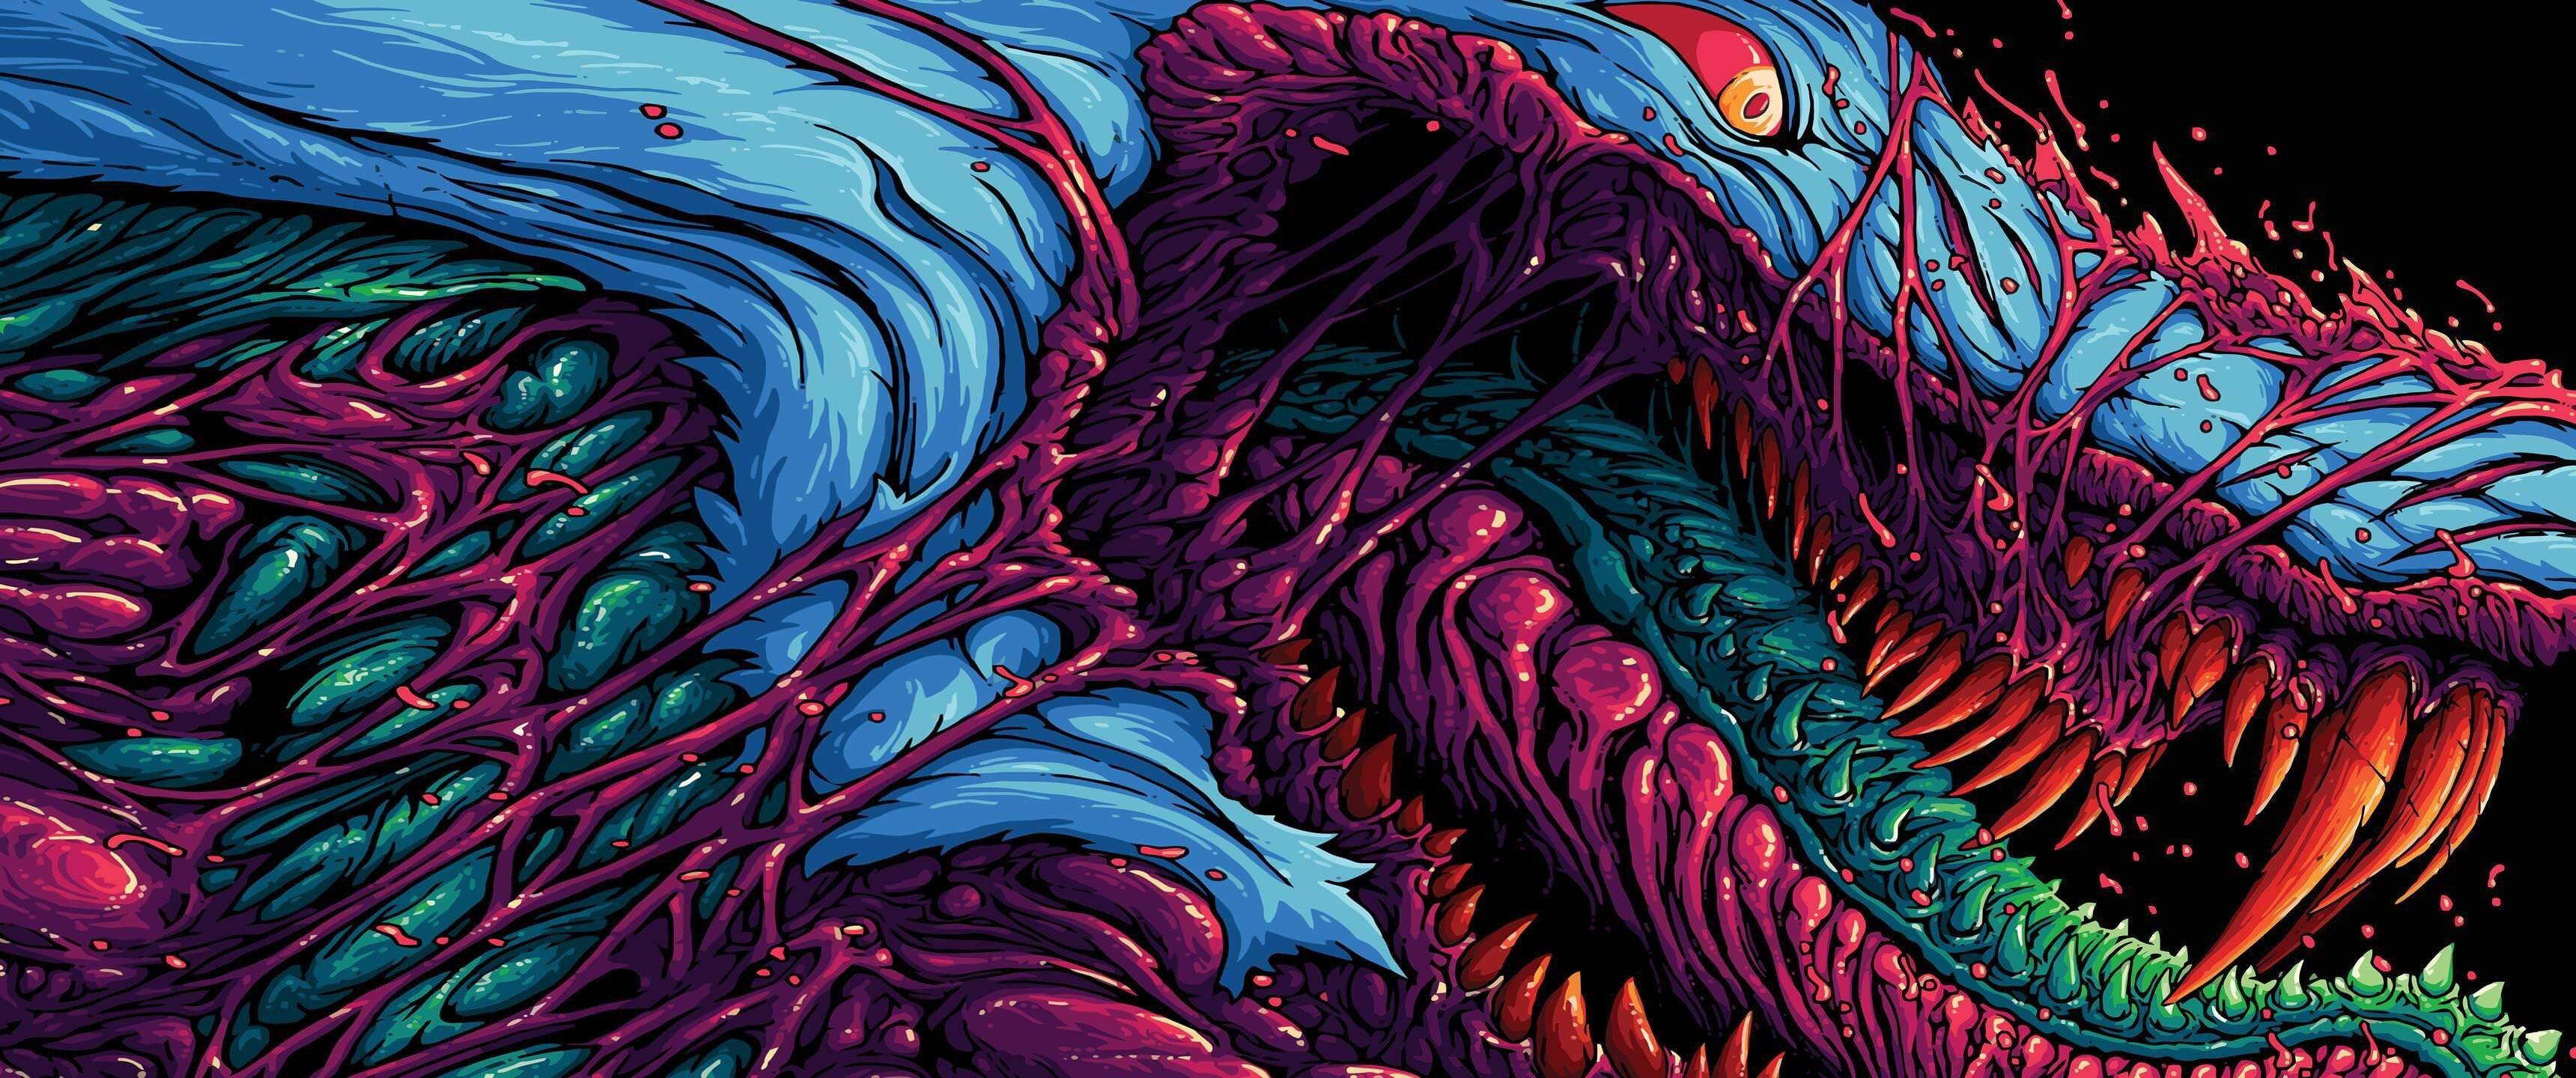 Seaman Demon Massive X Massive Hyper Beast Wallpaper